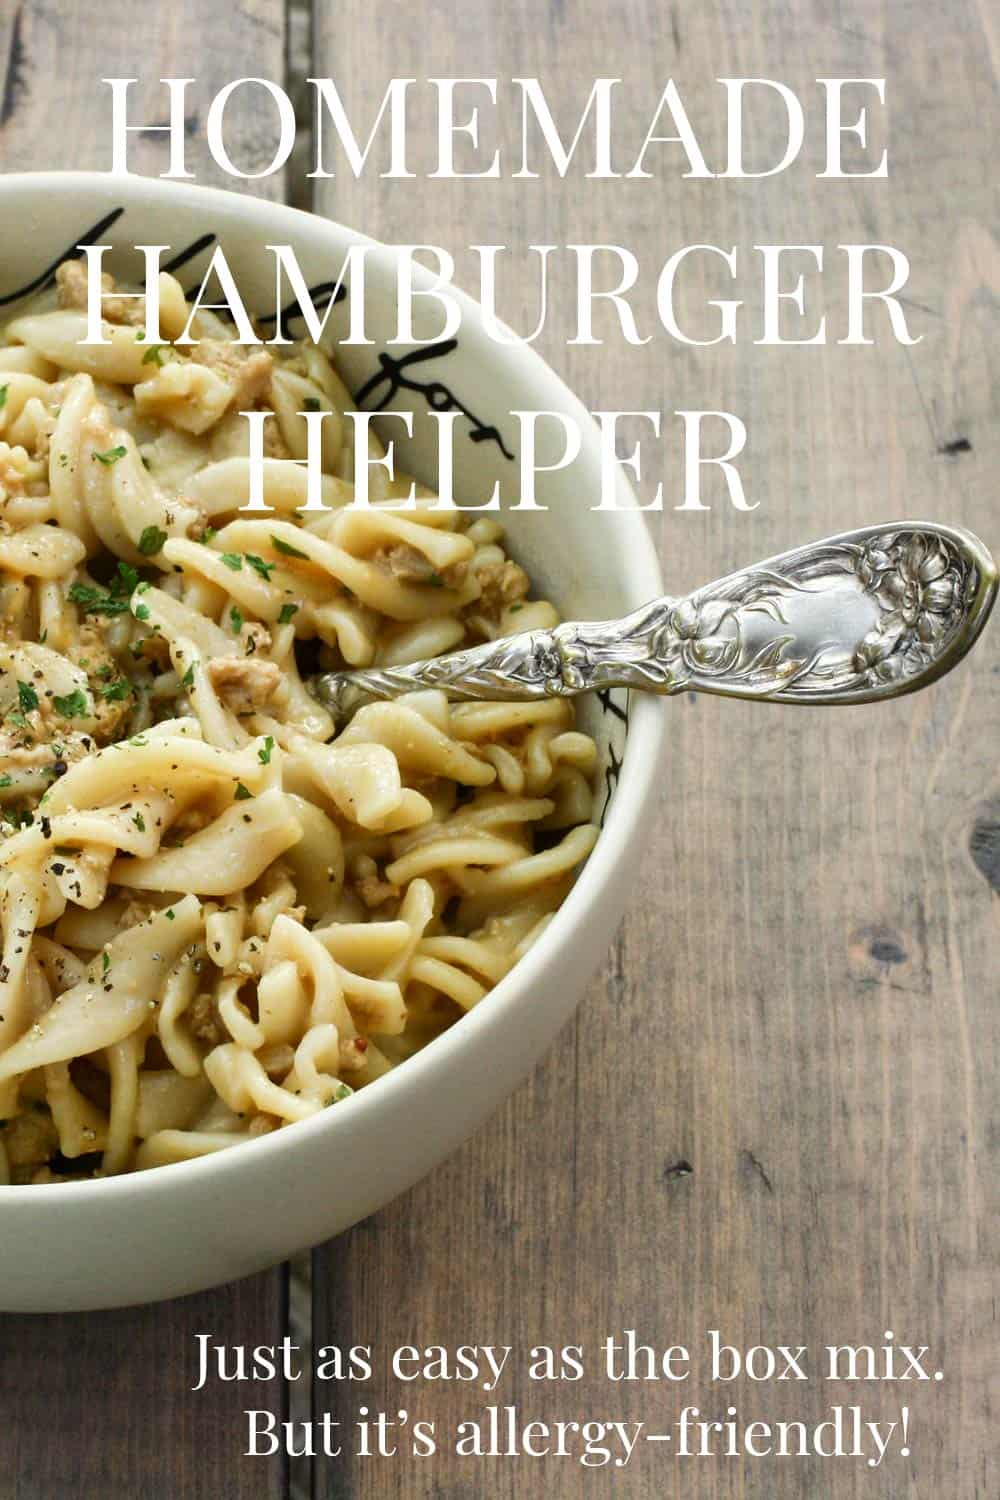 Pure comfort food, in a hurry, without any bad stuff! Our Homemade Hamburger Helper Recipe is simple to make and tastes great! And it can be made dairy free and gluten free too!